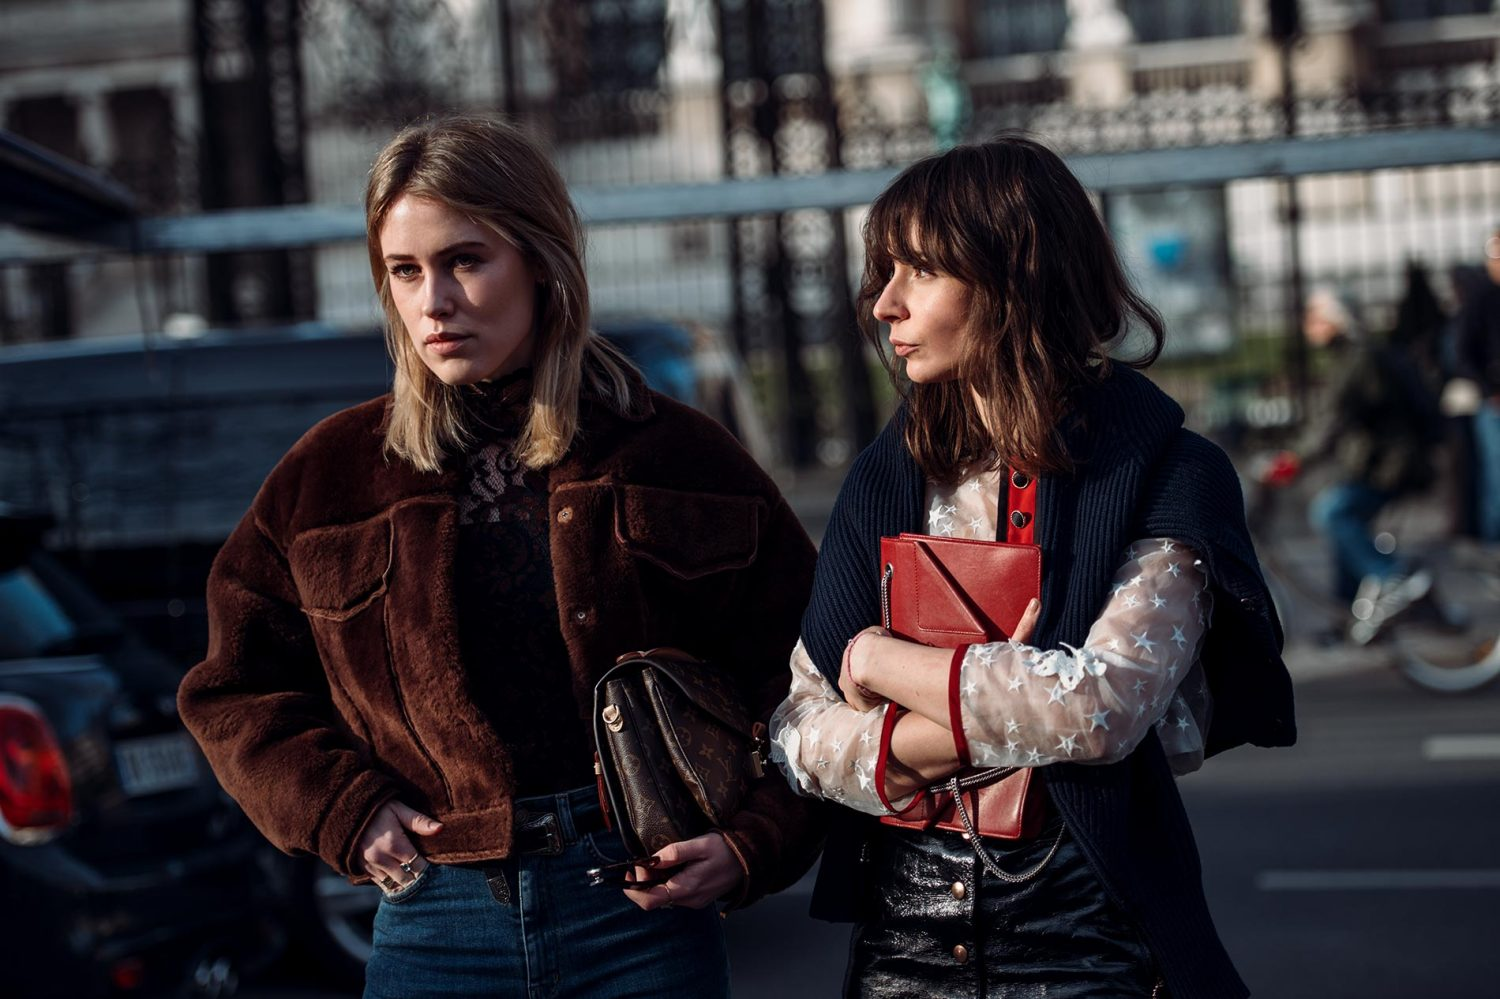 Annabel Rosendahl, Irina Lakicevic at Paris Fashion Week Fall/Winter 2015